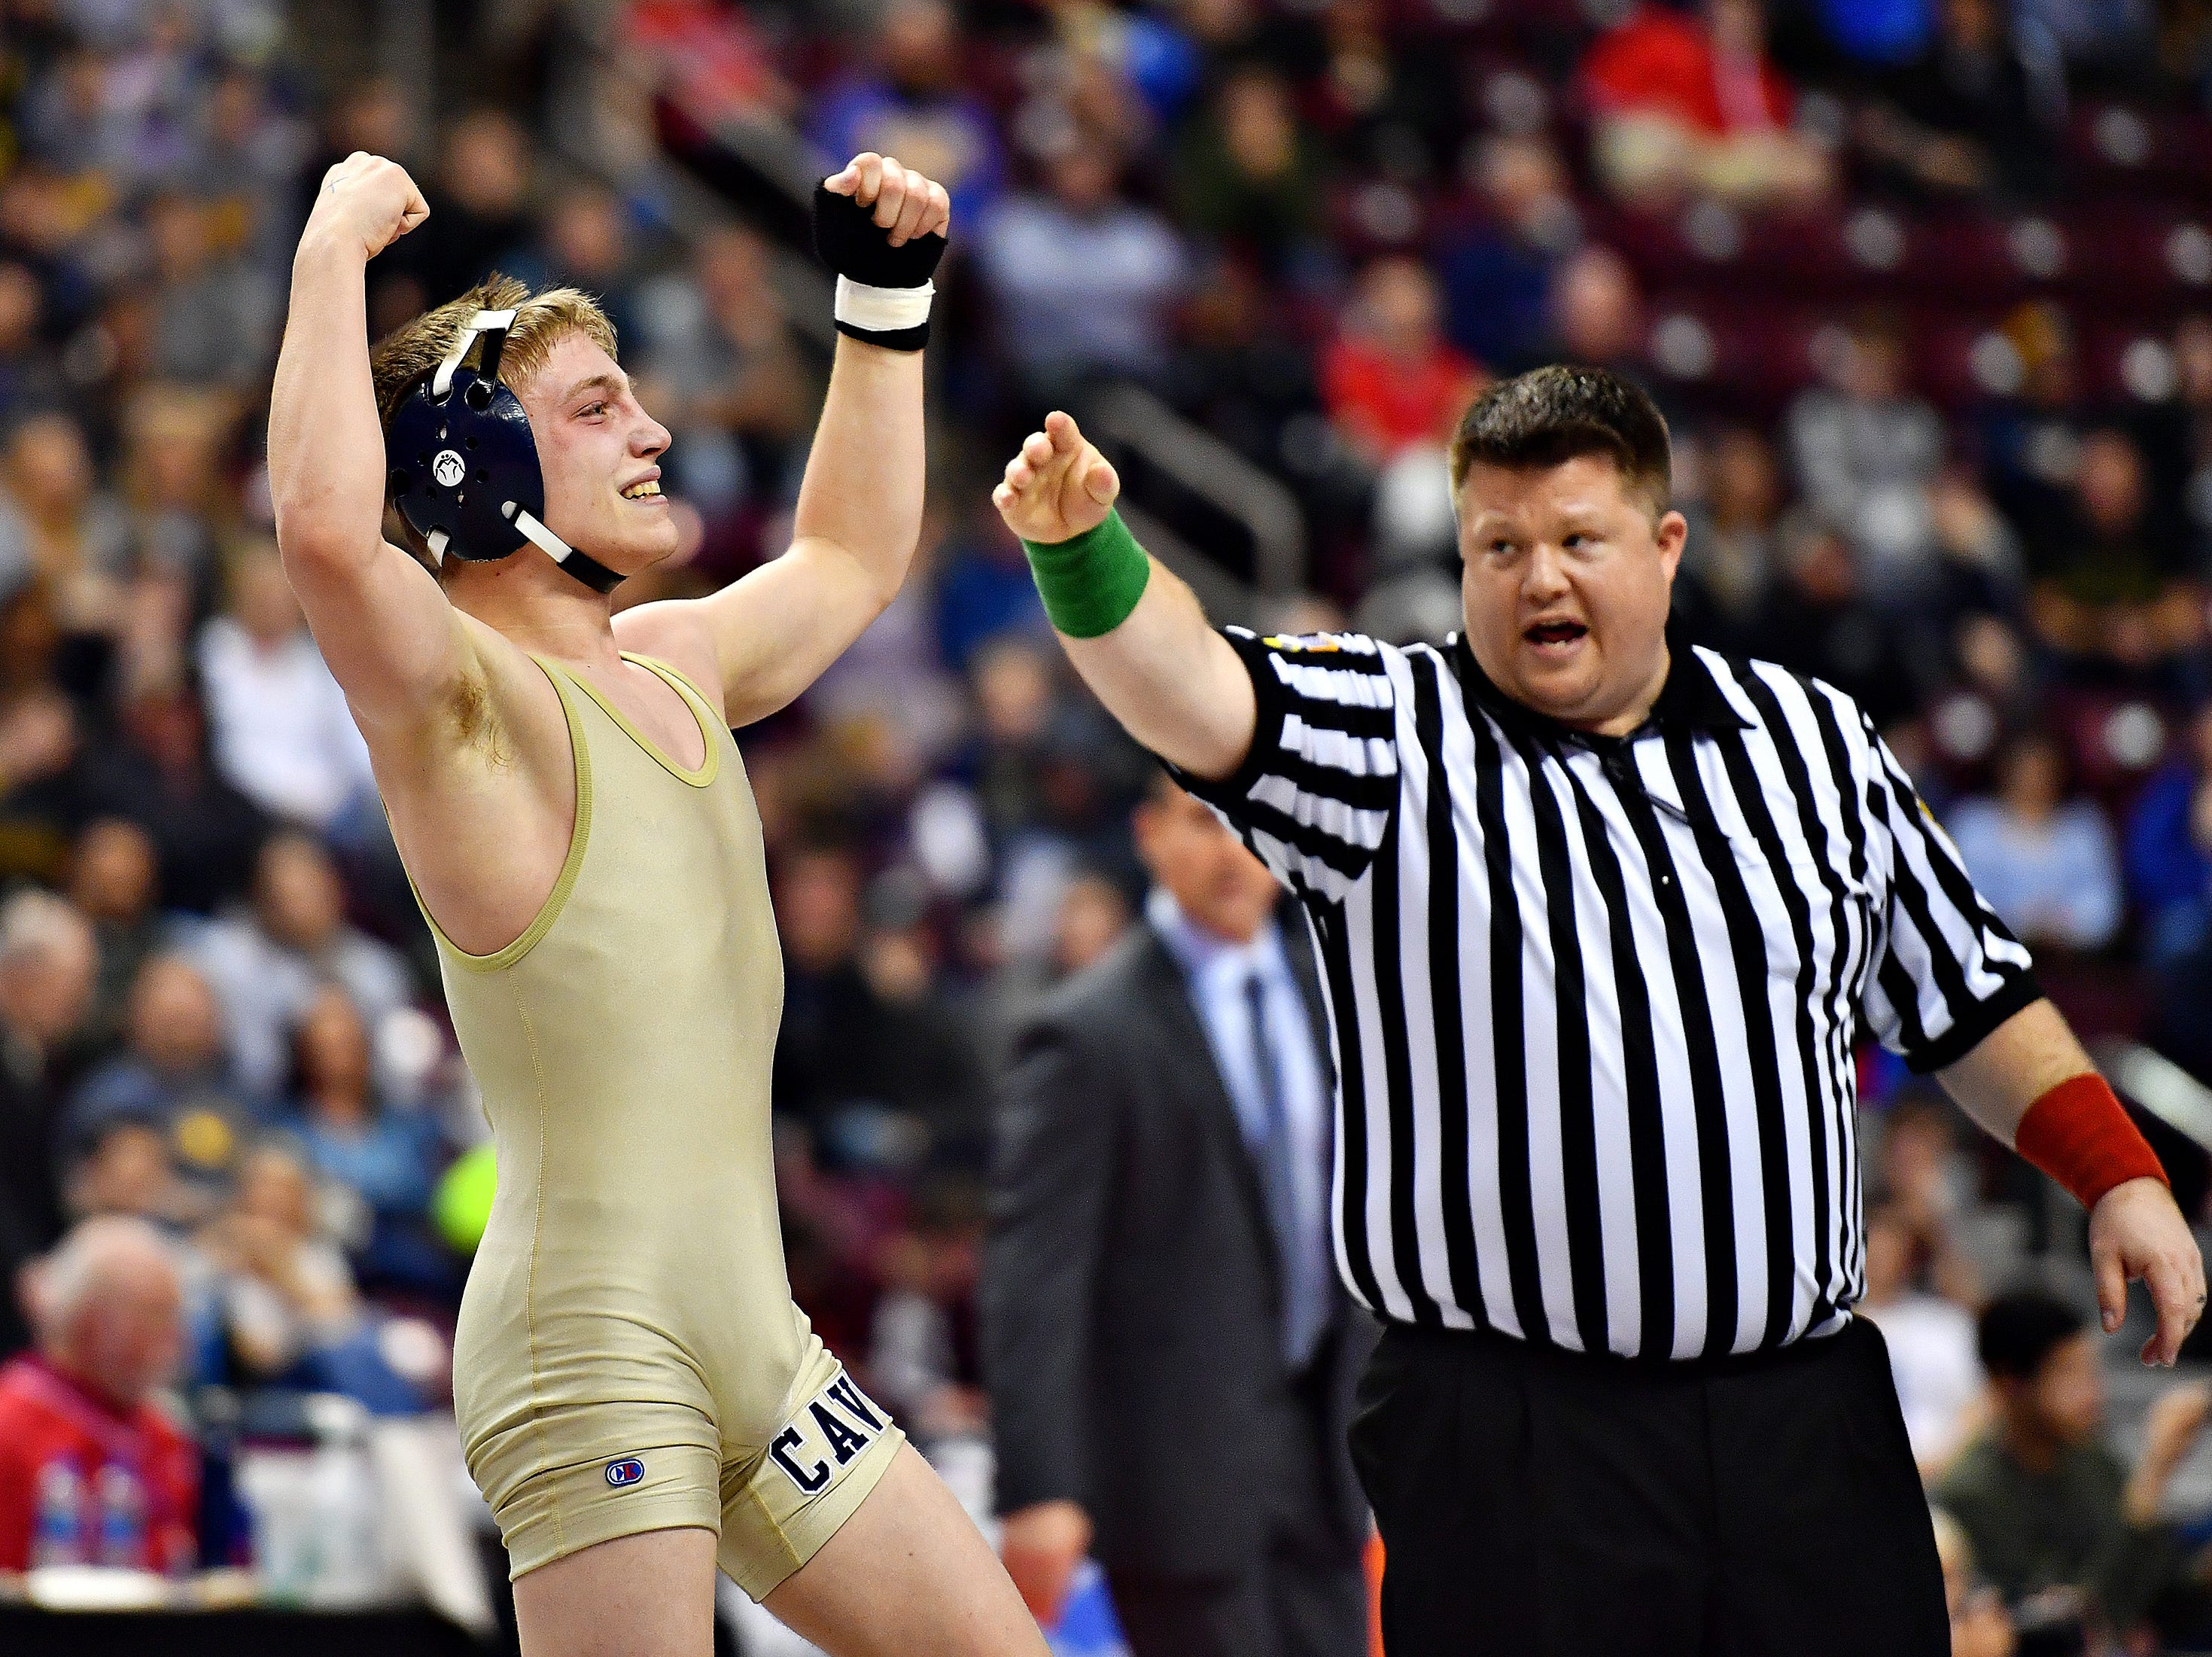 PIAA 3A Individual Wrestling Championships at Giant Center in Hershey, Saturday, March 9, 2019. Dawn J. Sagert photo